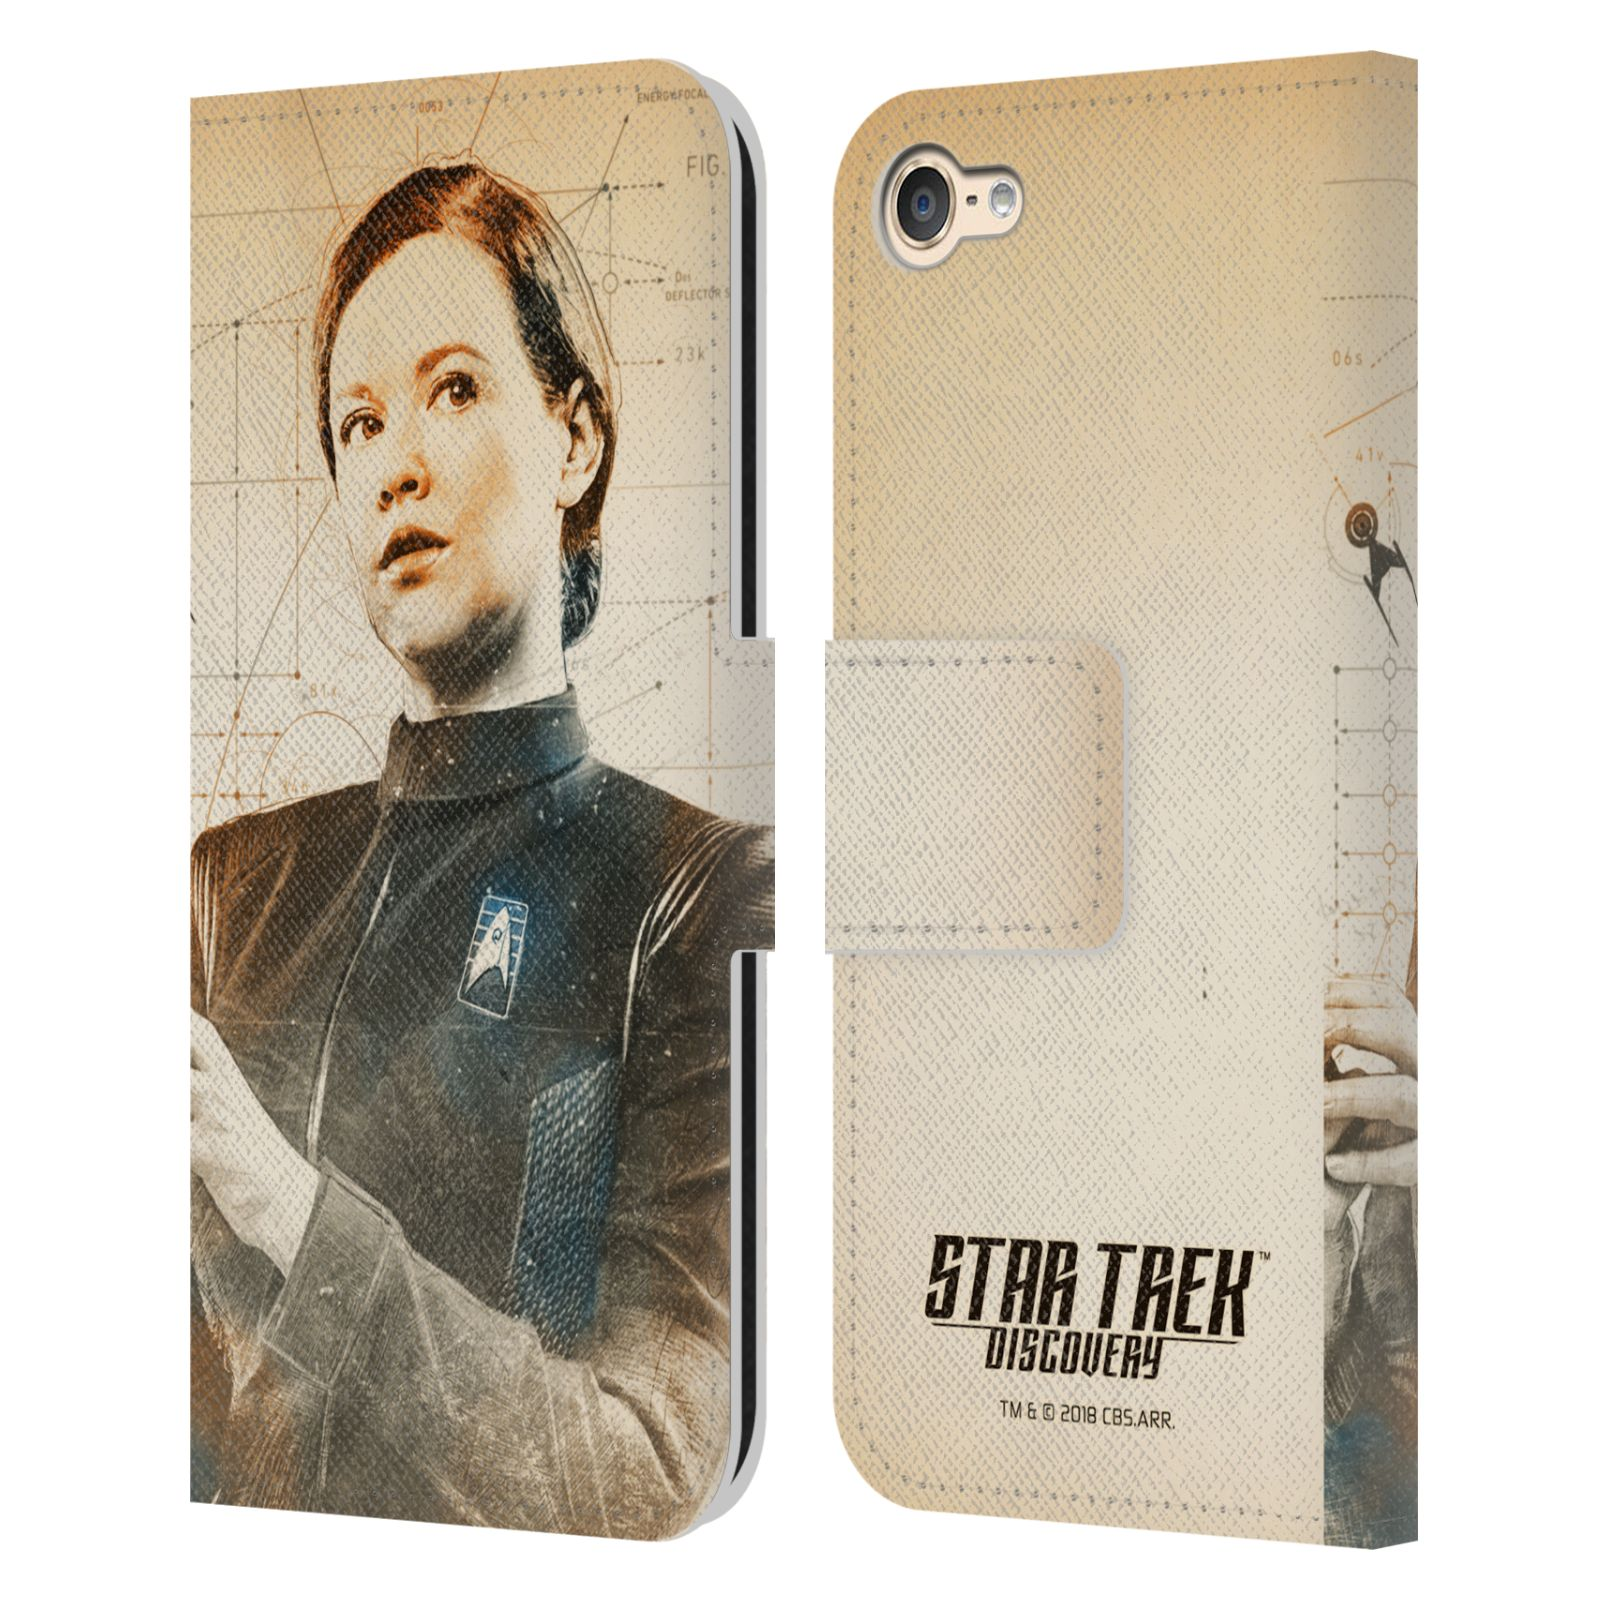 STAR-TREK-DISCOVERY-GRUNGE-CHARACTERS-LEATHER-BOOK-CASE-FOR-APPLE-iPOD-TOUCH-MP3